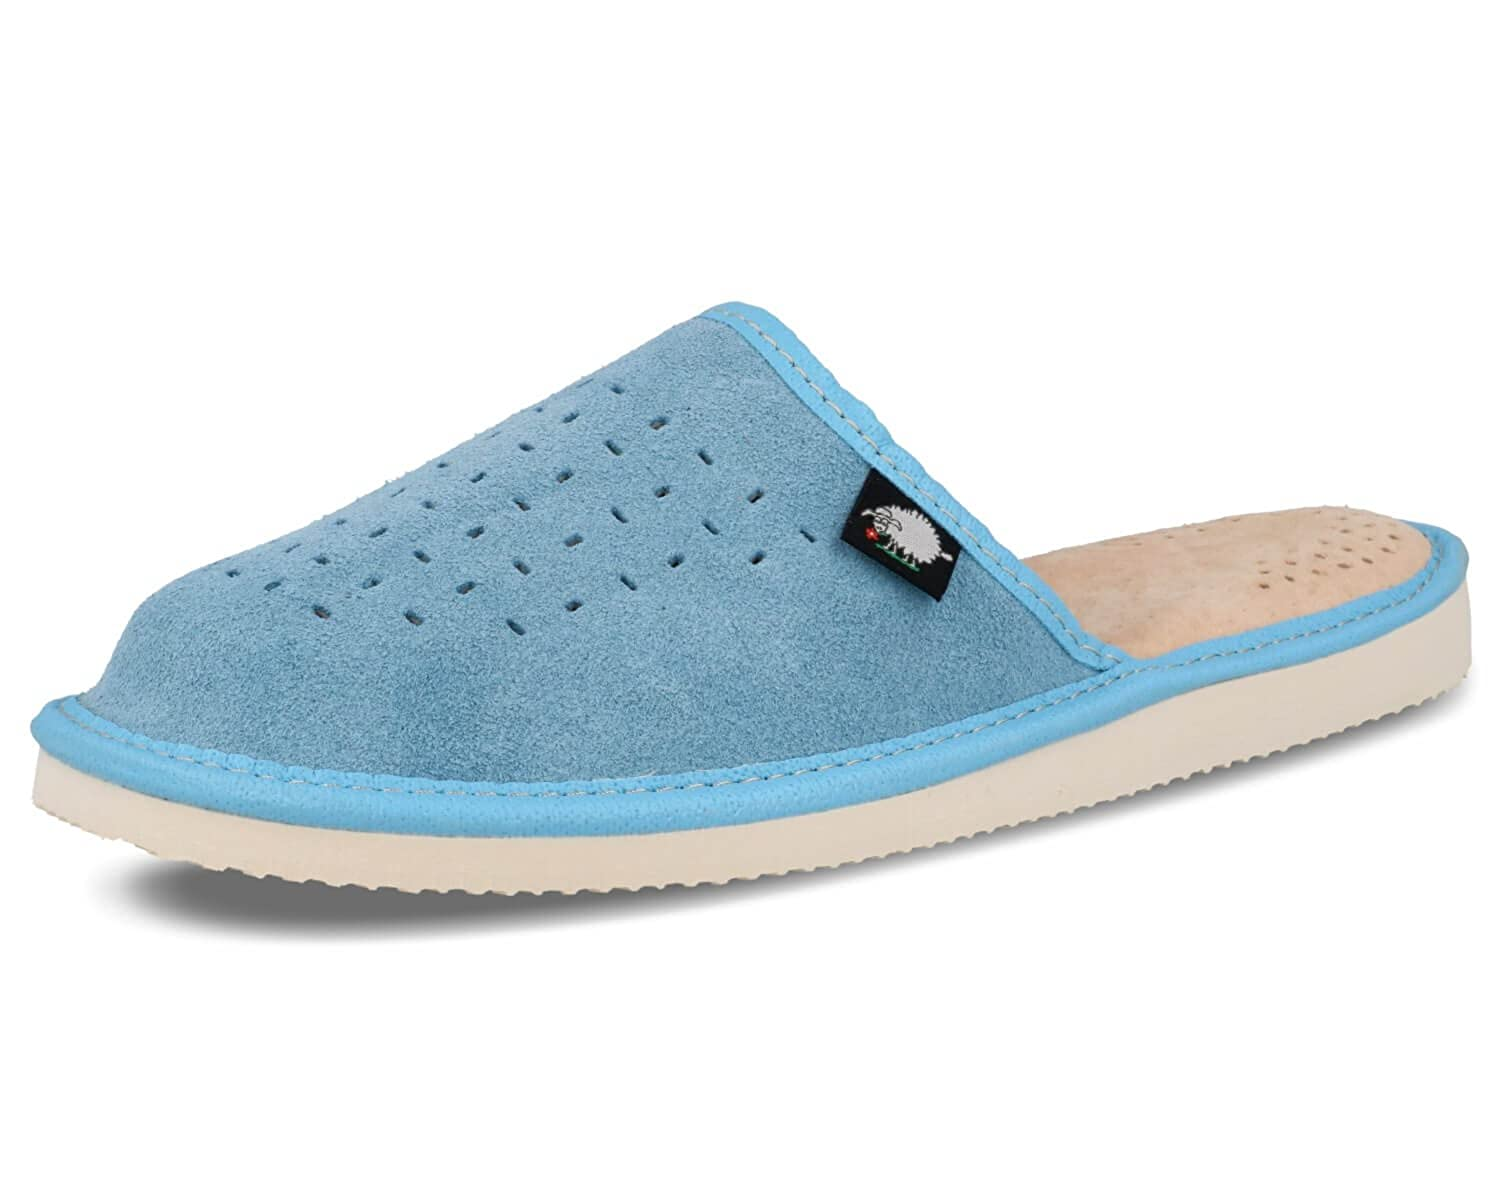 Ecoslippers Suede Compensées Touch Green, Sandales Compensées - Ecoslippers Femme - Bleu - Bleu, 39.5 - b71c93b - fast-weightloss-diet.space